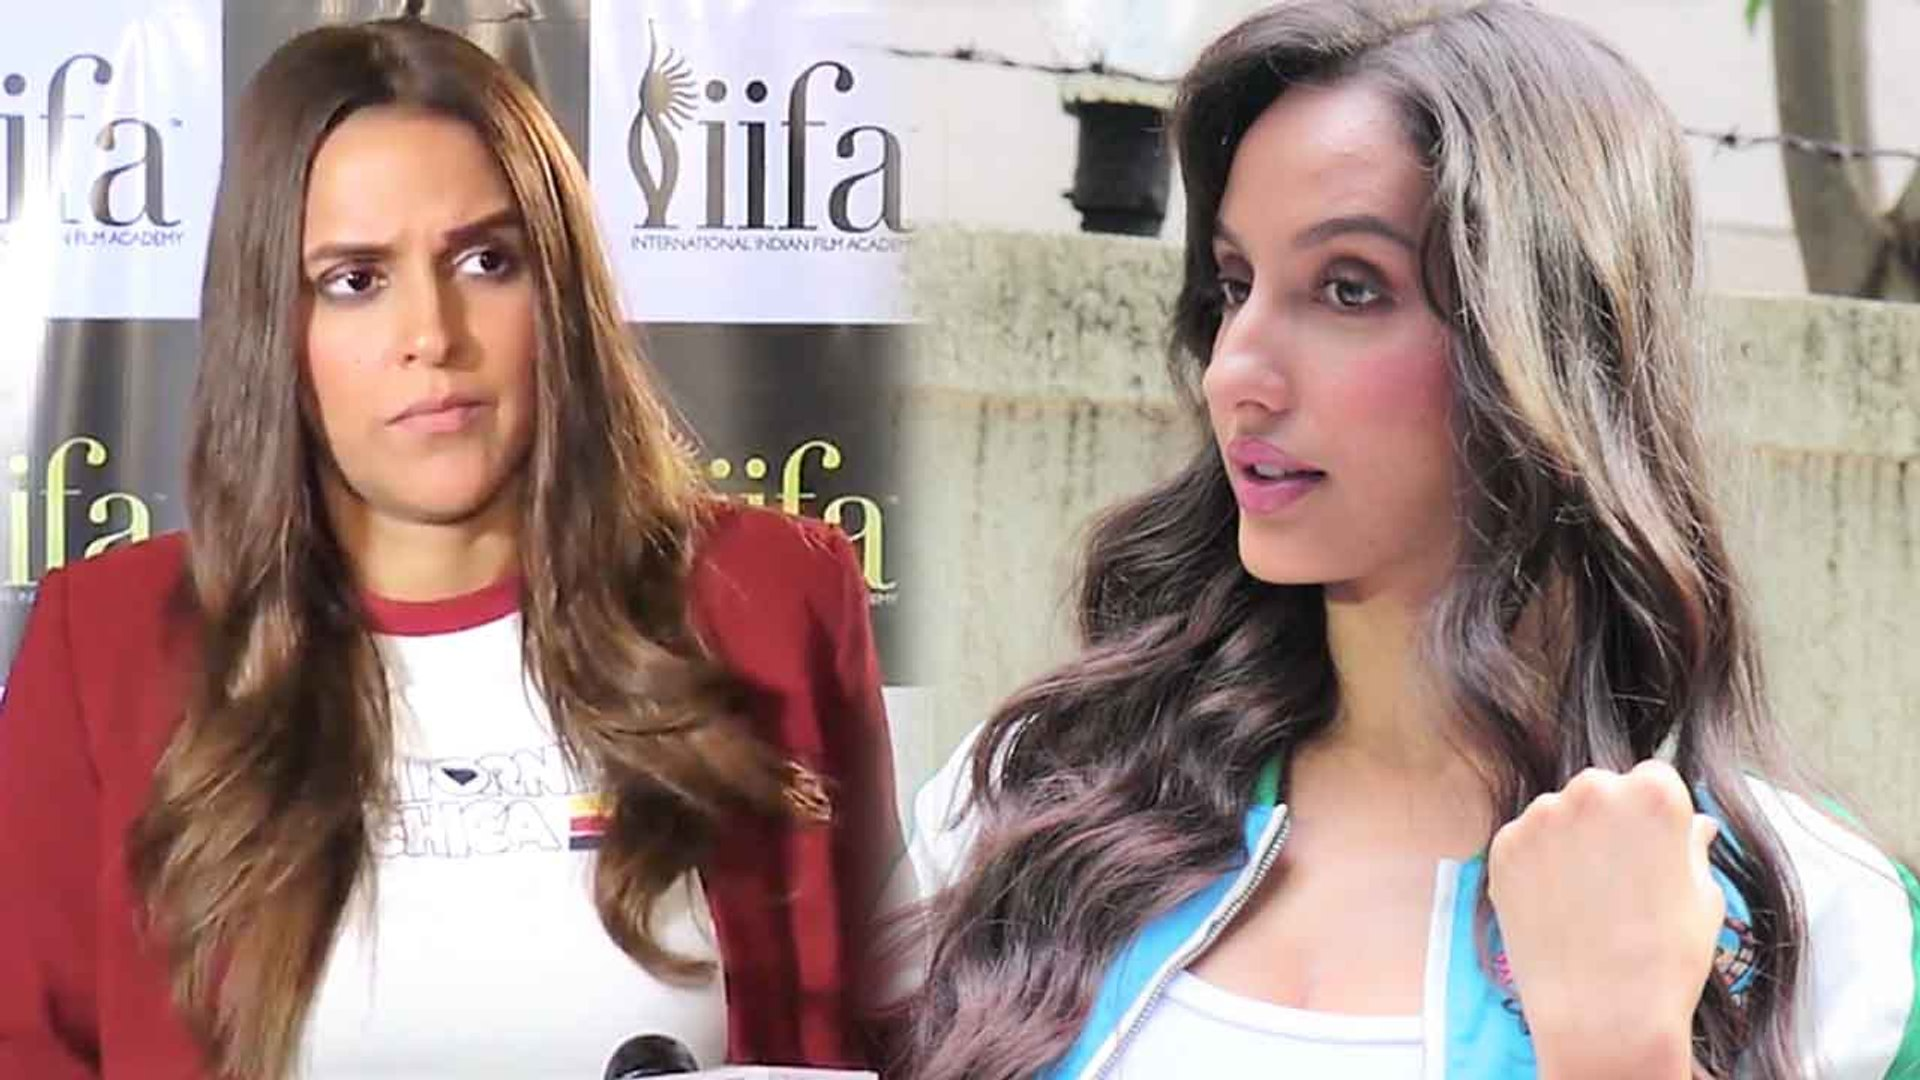 Neha Dhupia & Angad Bedi's EX Nora Fatehi IGNORE each other at an event | FilmiBeat